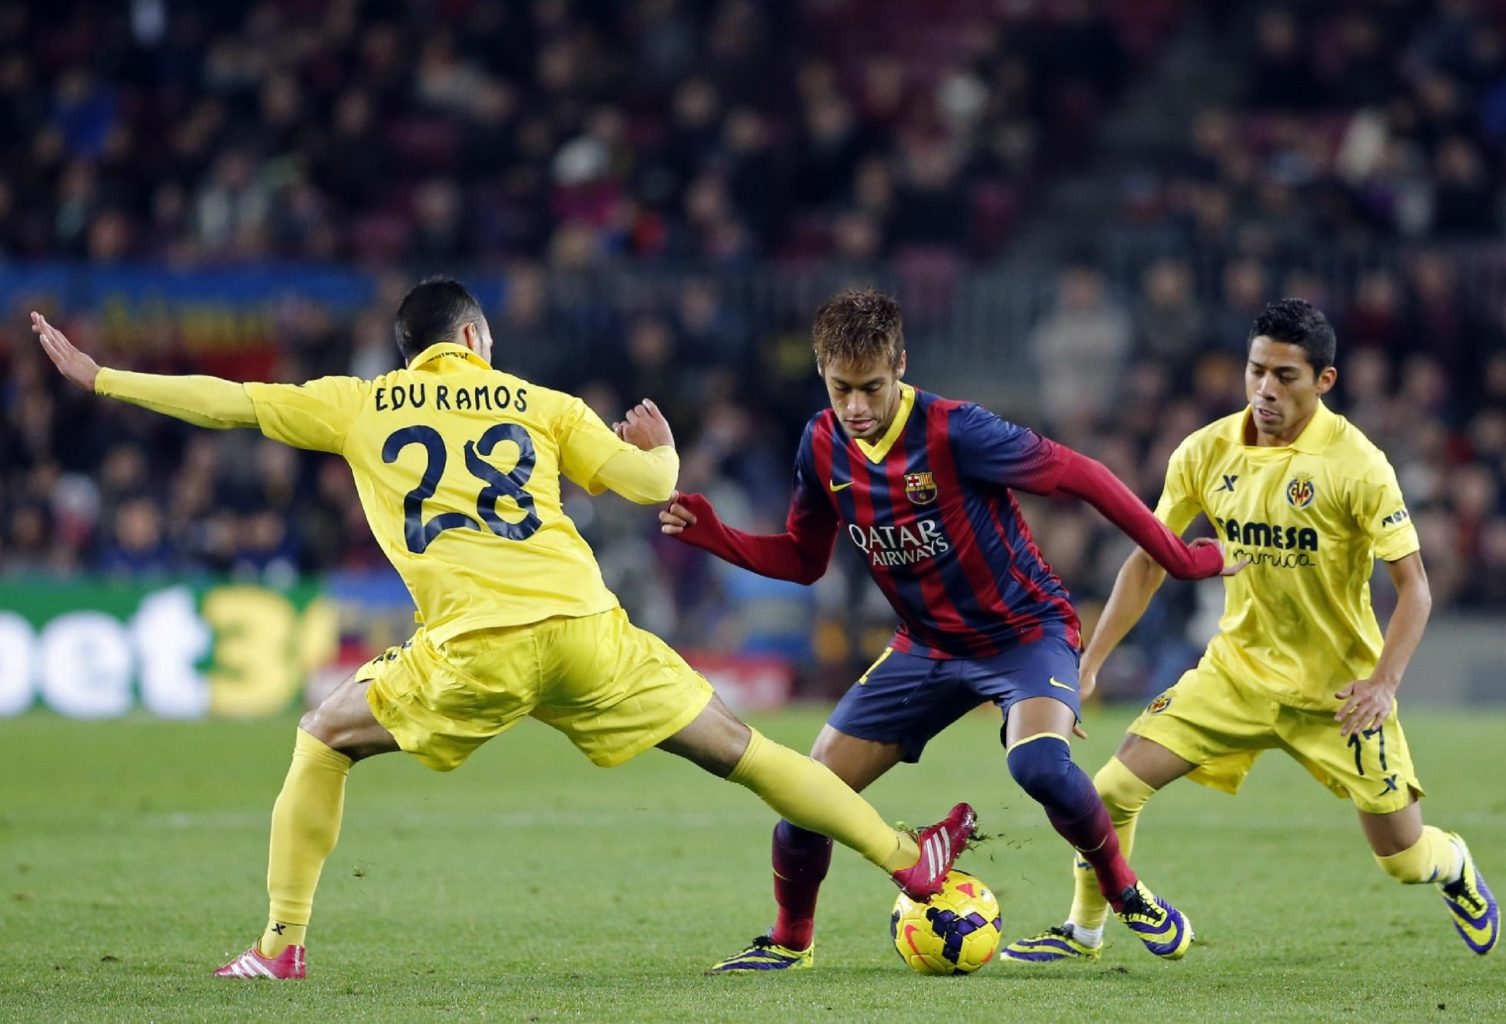 Neymar getting past two Villarreal defenders